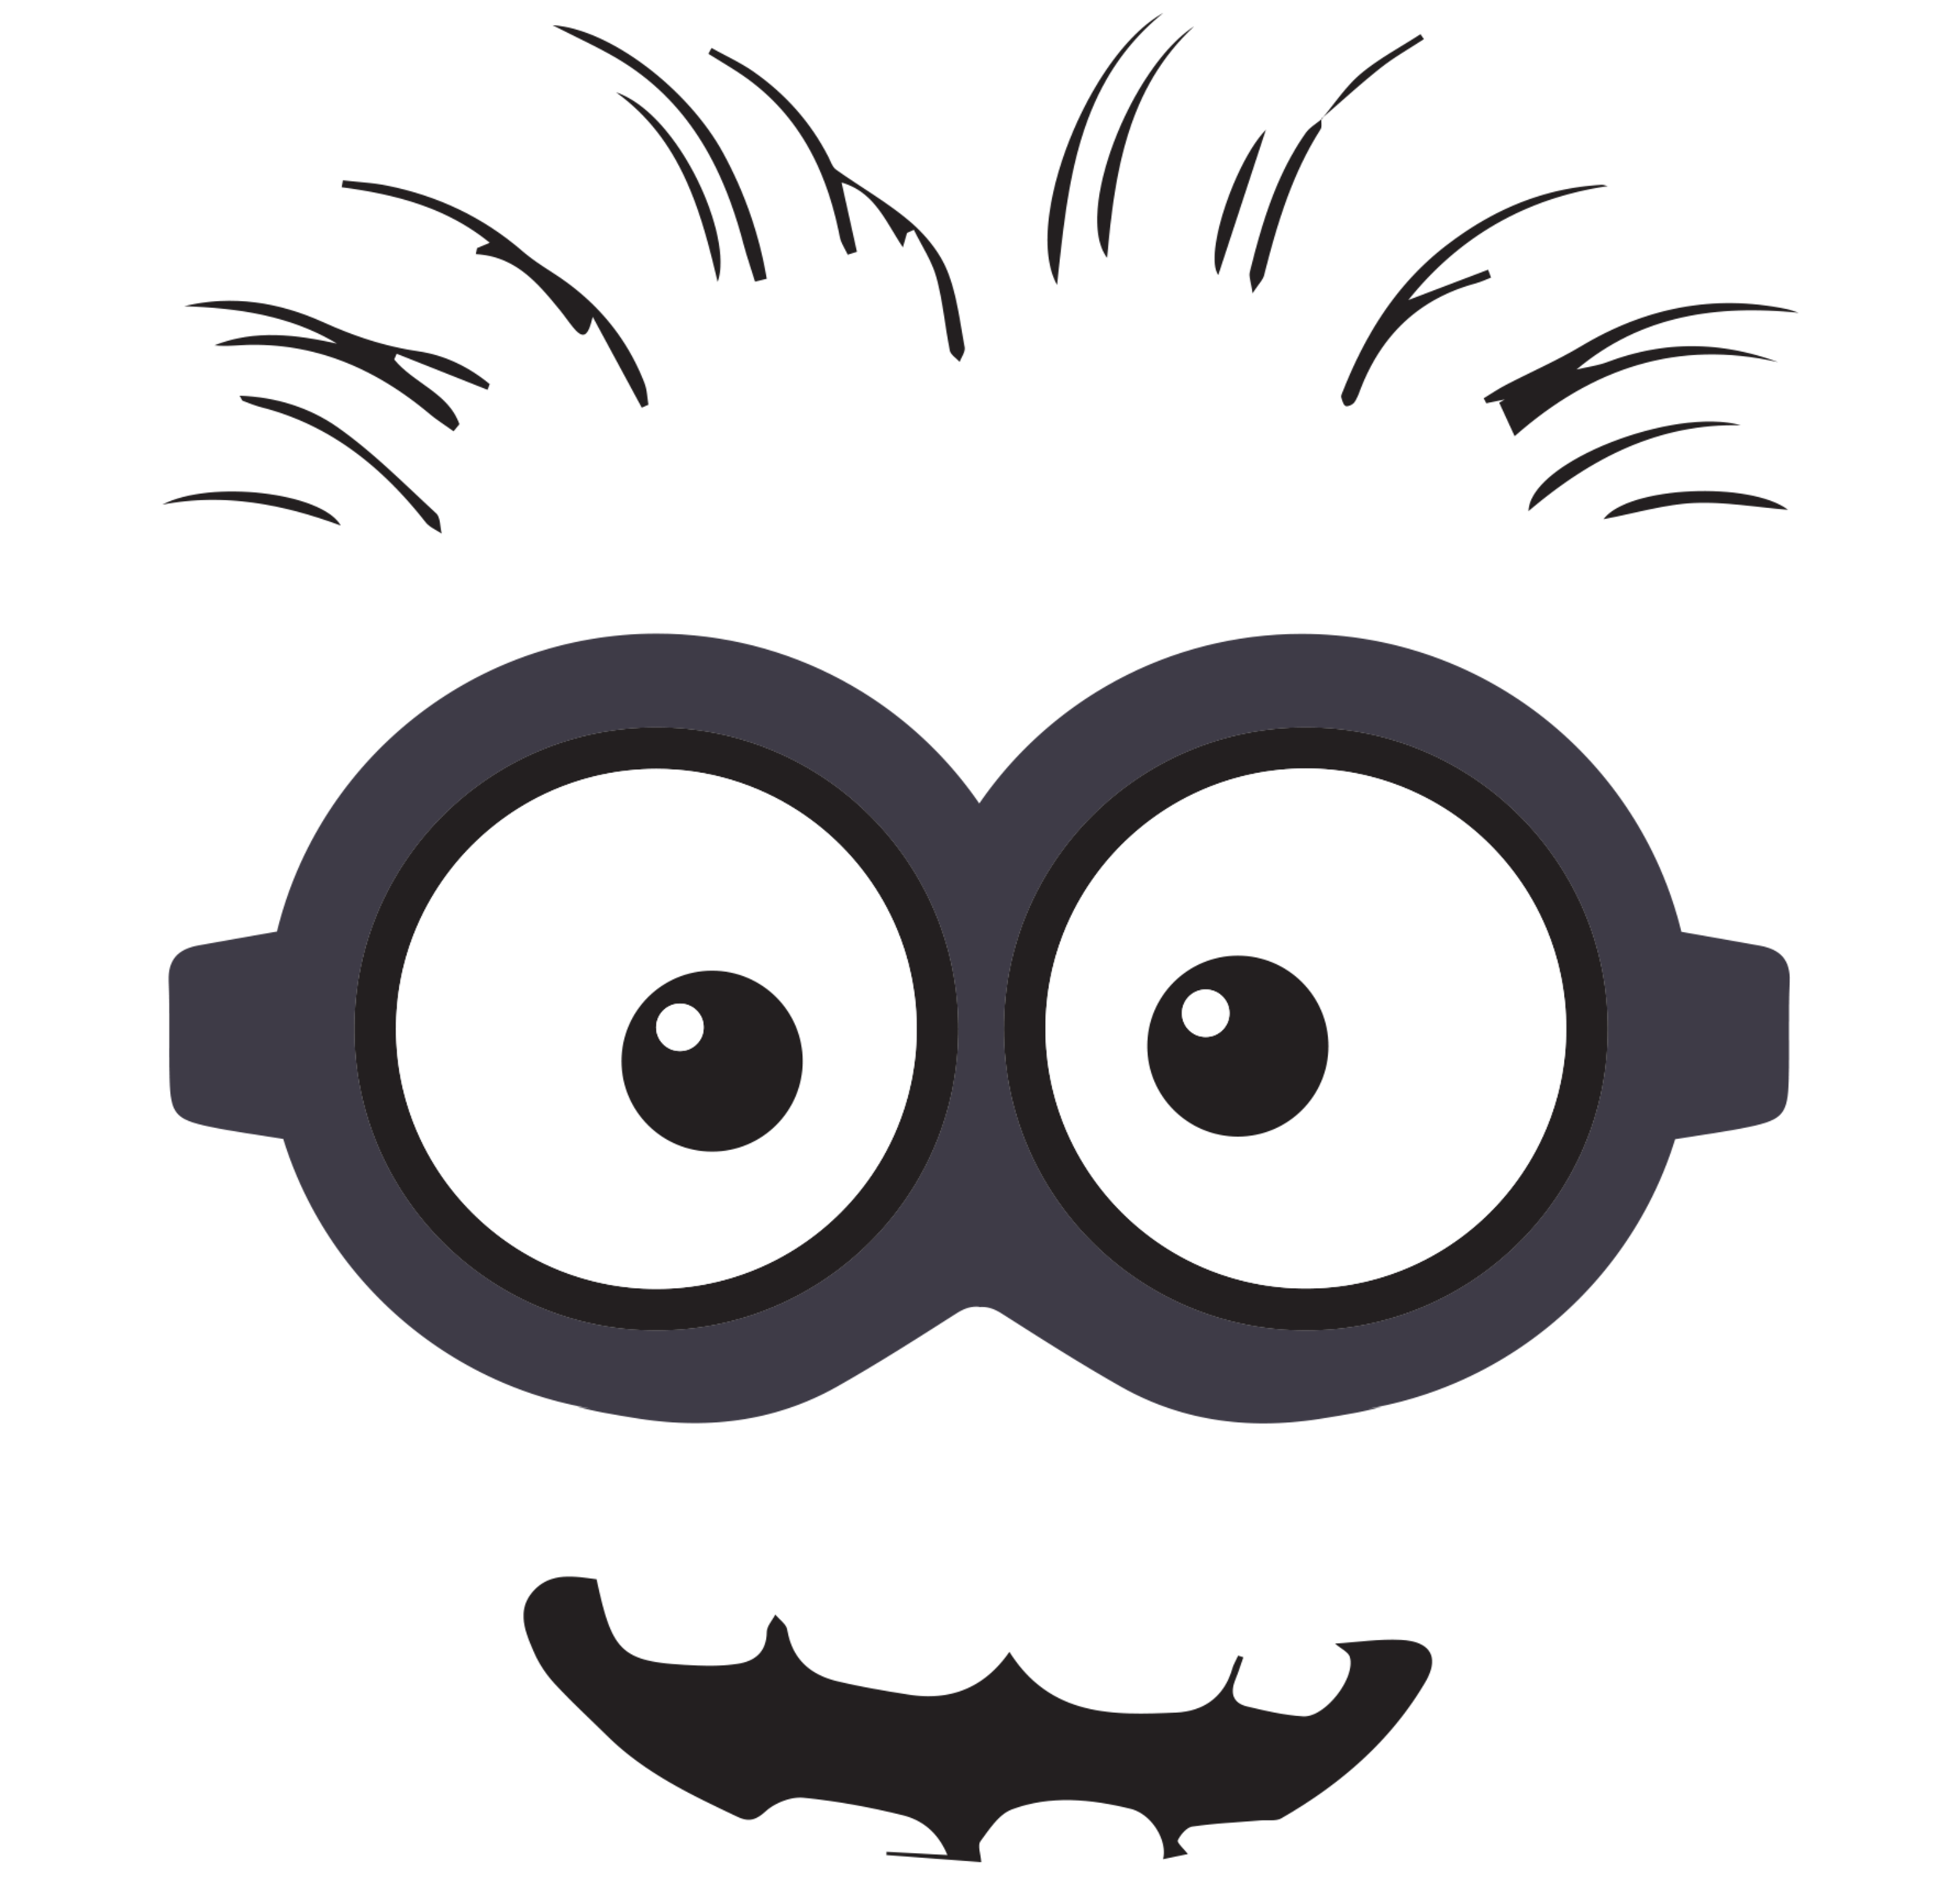 image relating to Minion Goggle Printable known as The least difficult totally free Despicable silhouette visuals. Obtain in opposition to 16